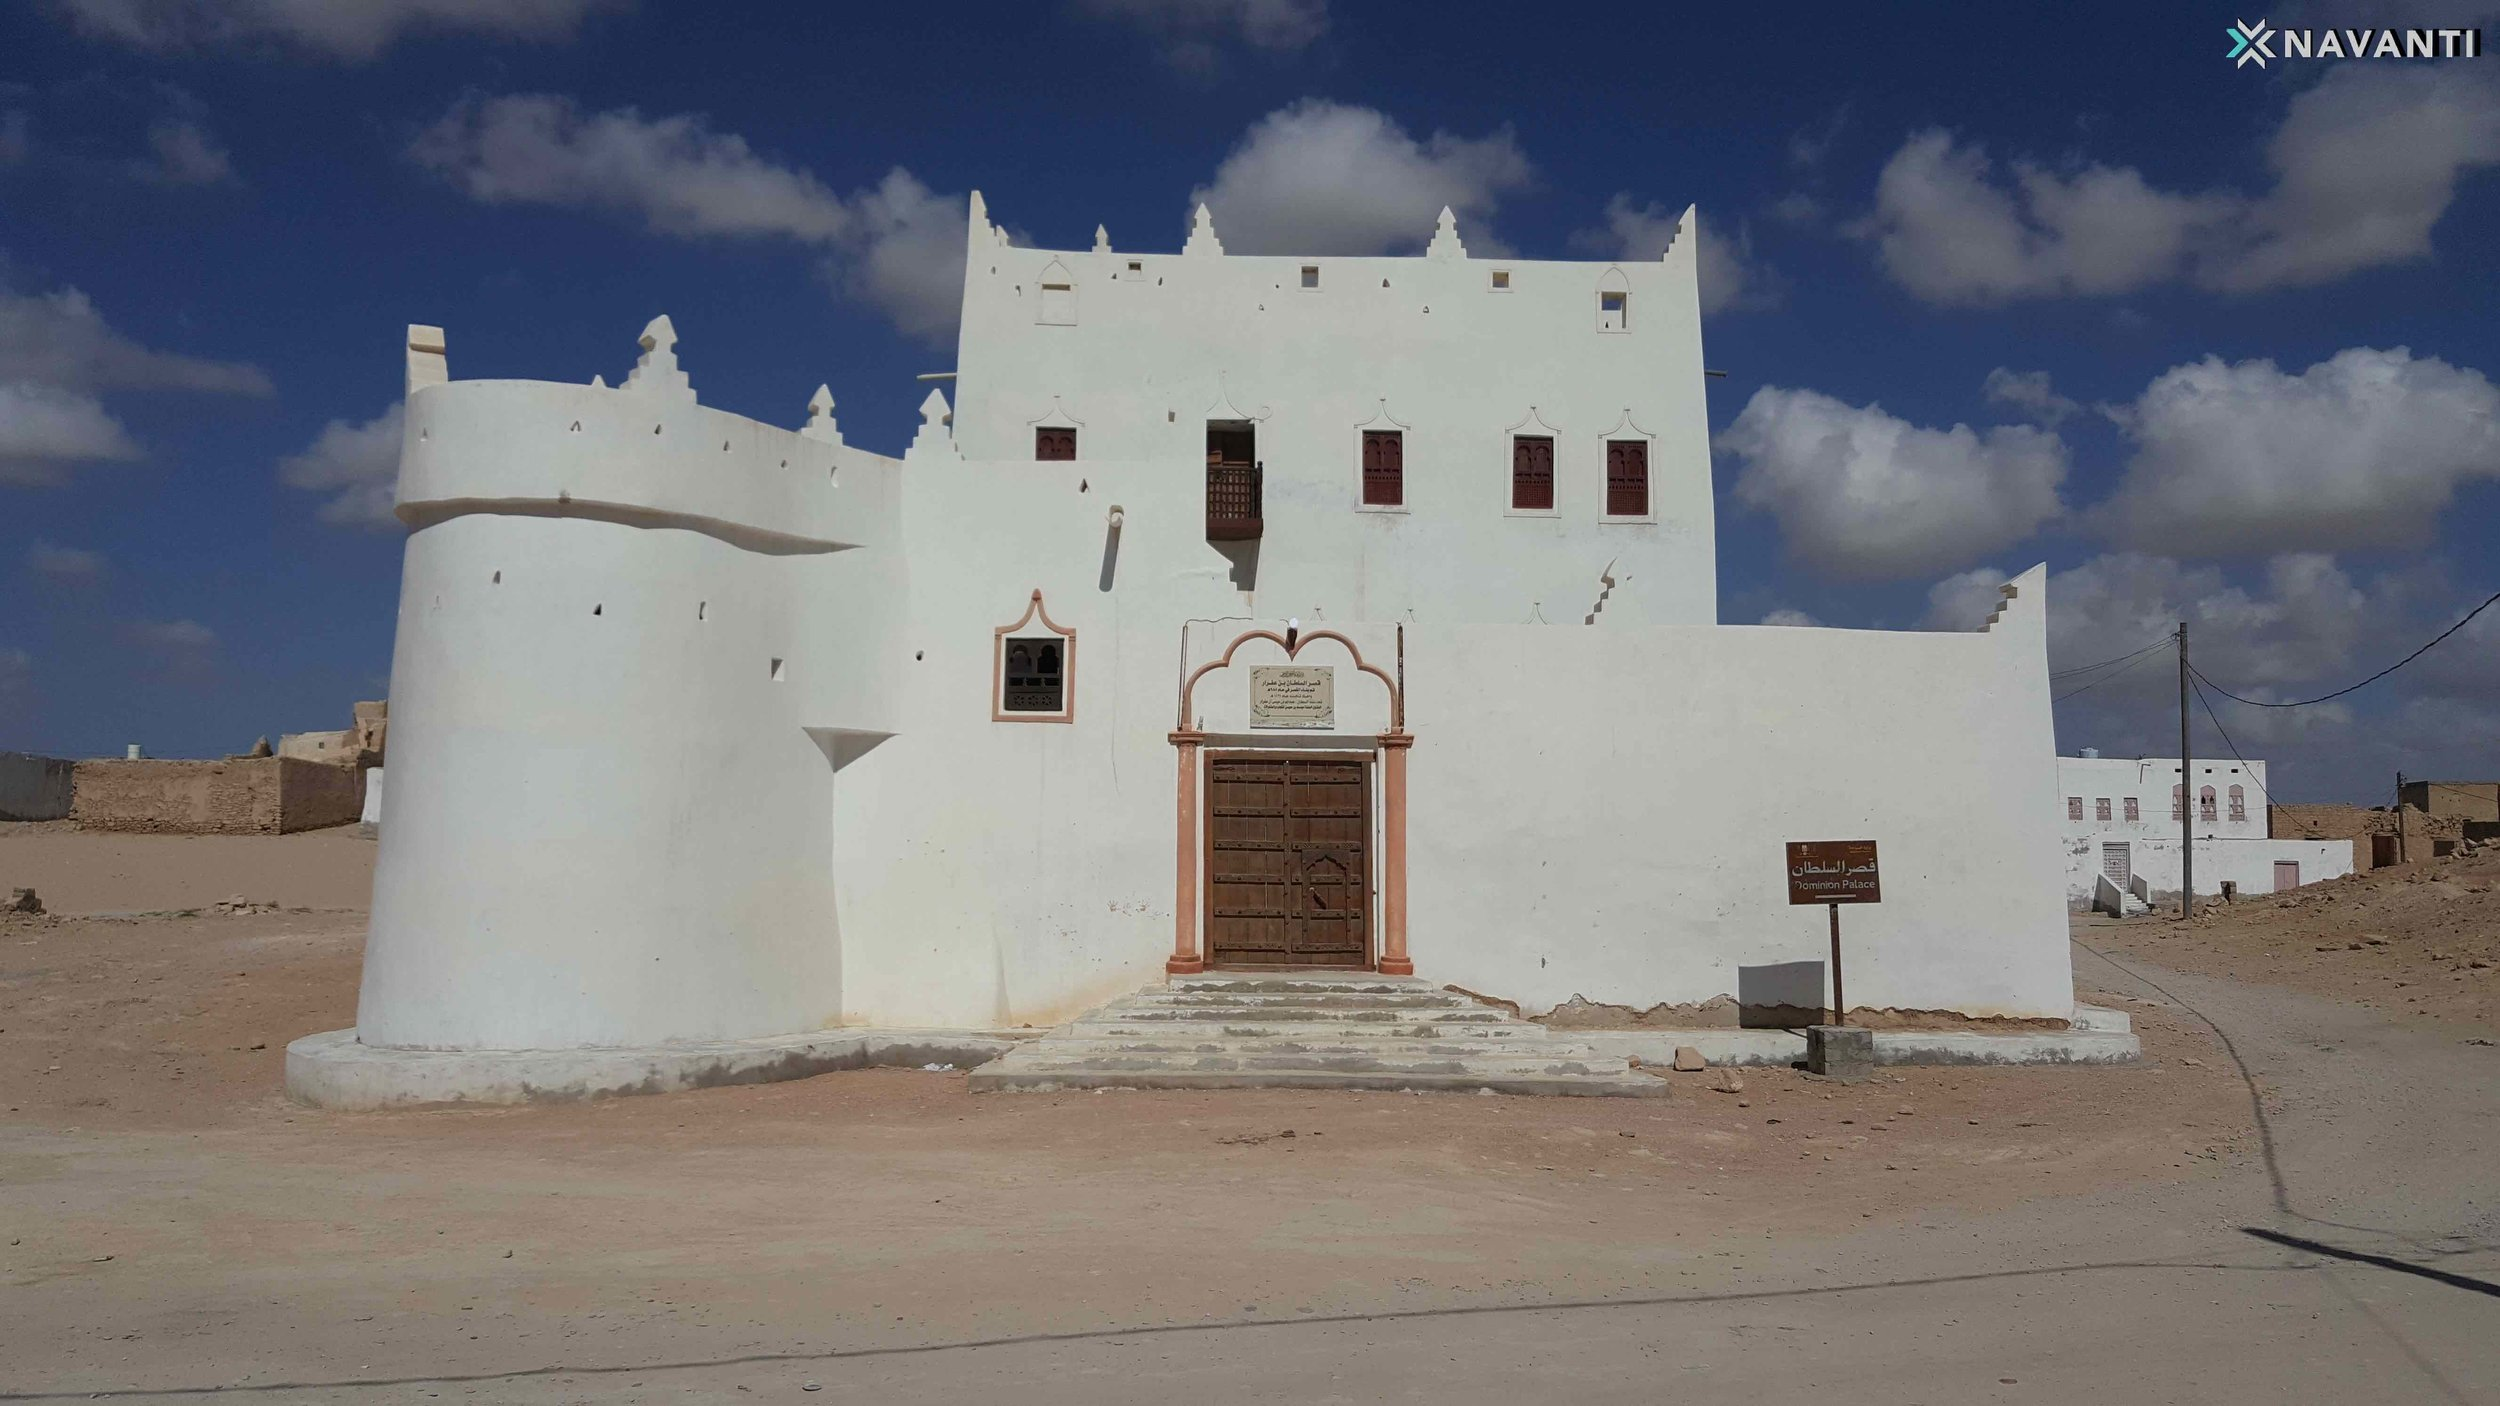 Palace of Sultan Bin Afrar, built in 1277 and renovated in 2019, Qishn, al-Mahra. Source: Navanti